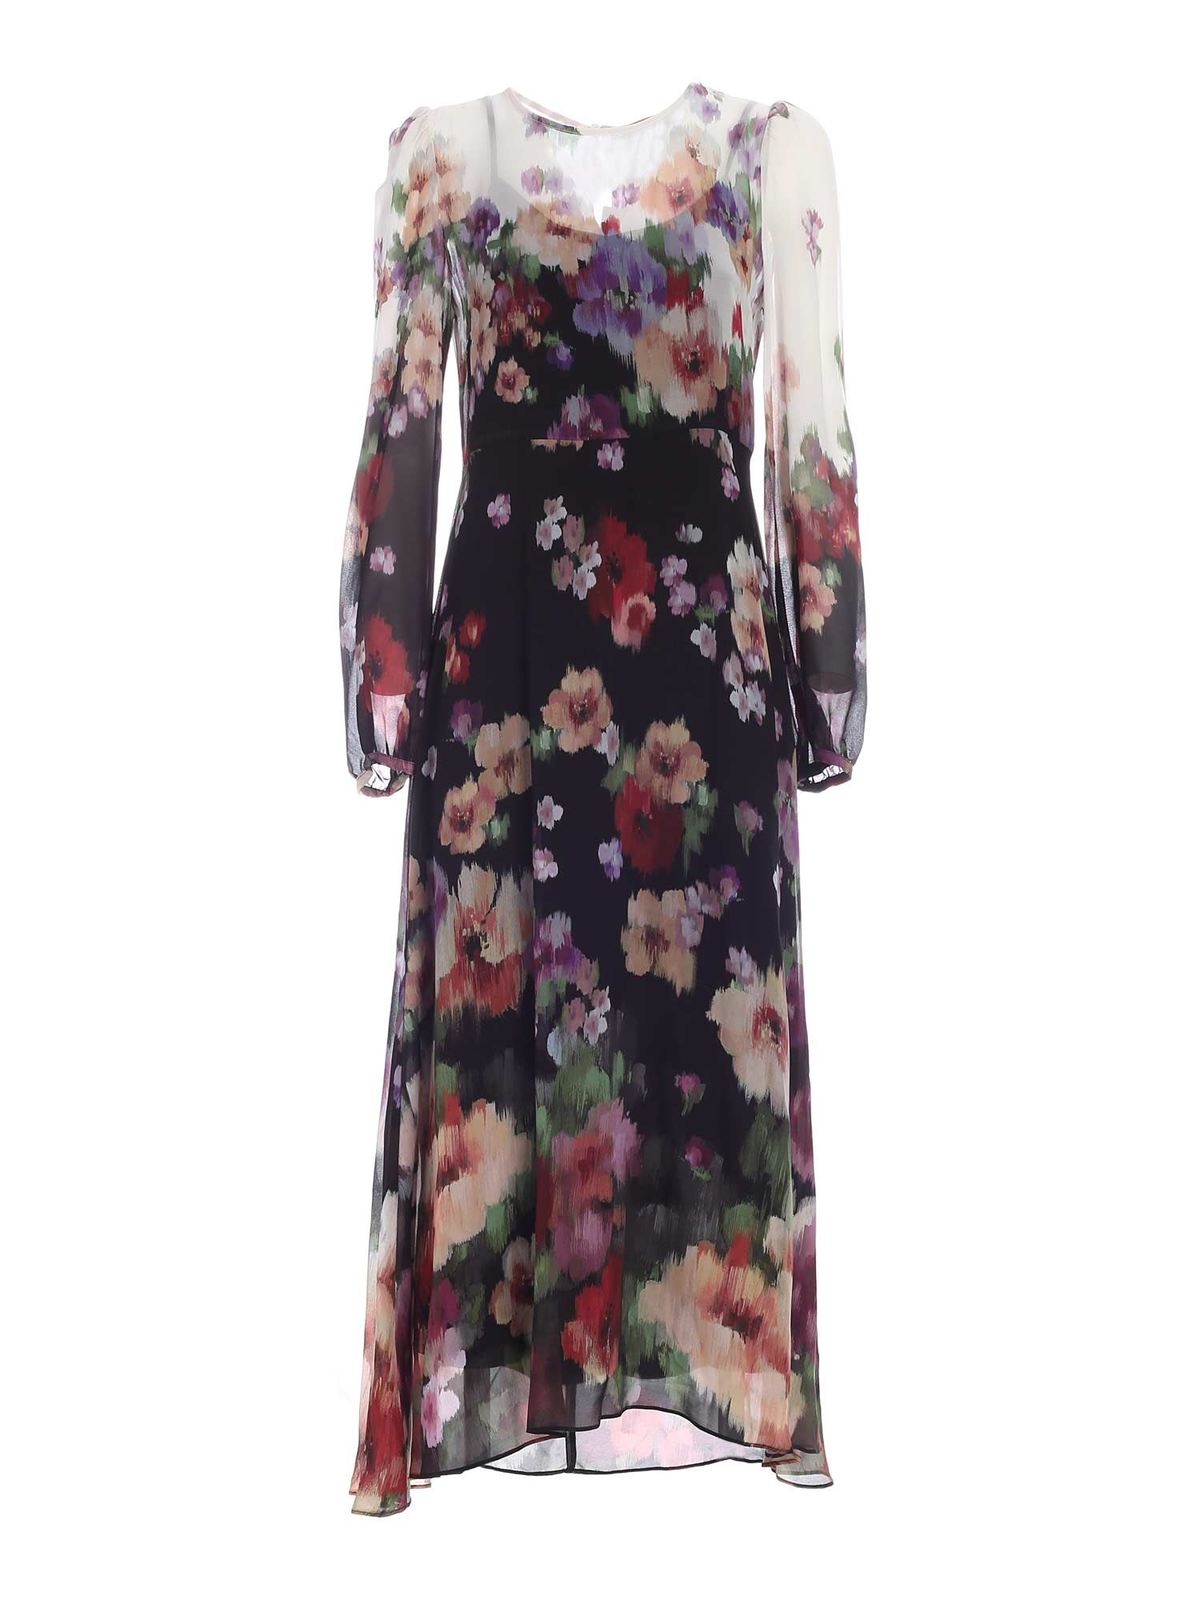 Twinset FLORAL PRINT DEGRADE EFFECT DRESS IN BLACK